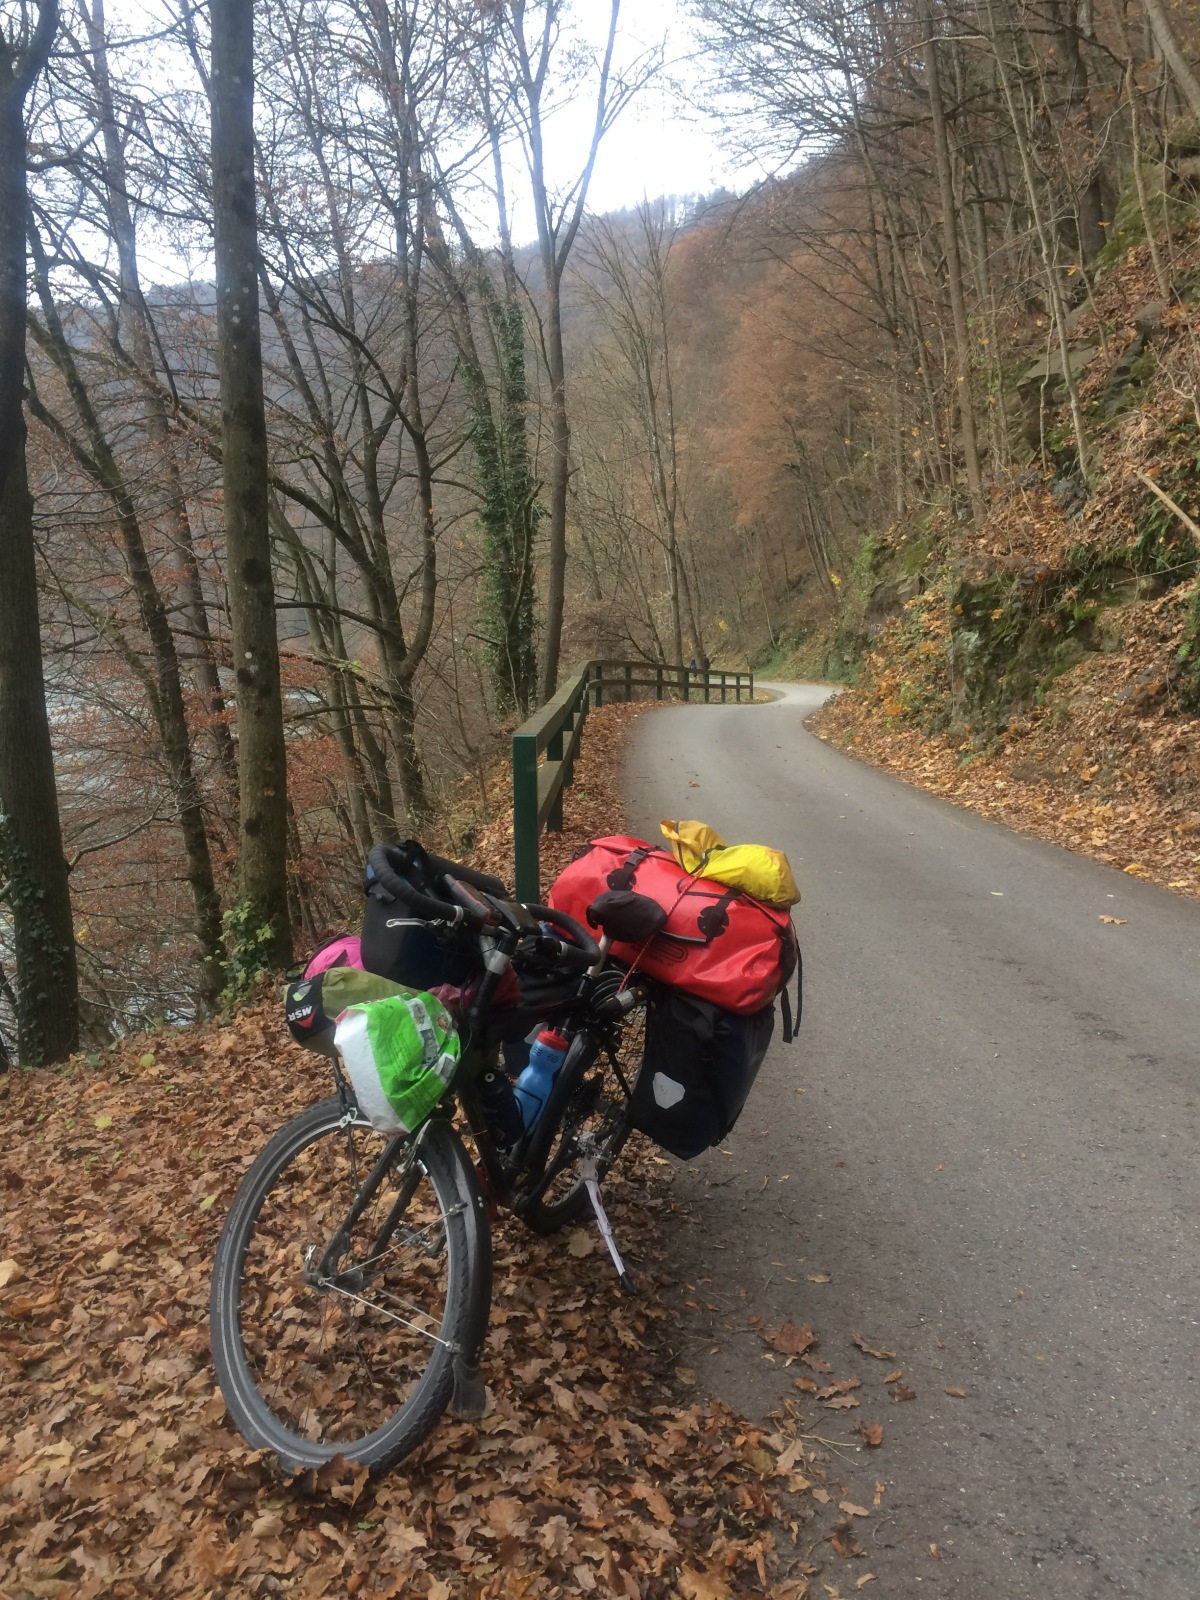 Balkans 2016 – Day 69 : Linz to Wissenufer, Austria